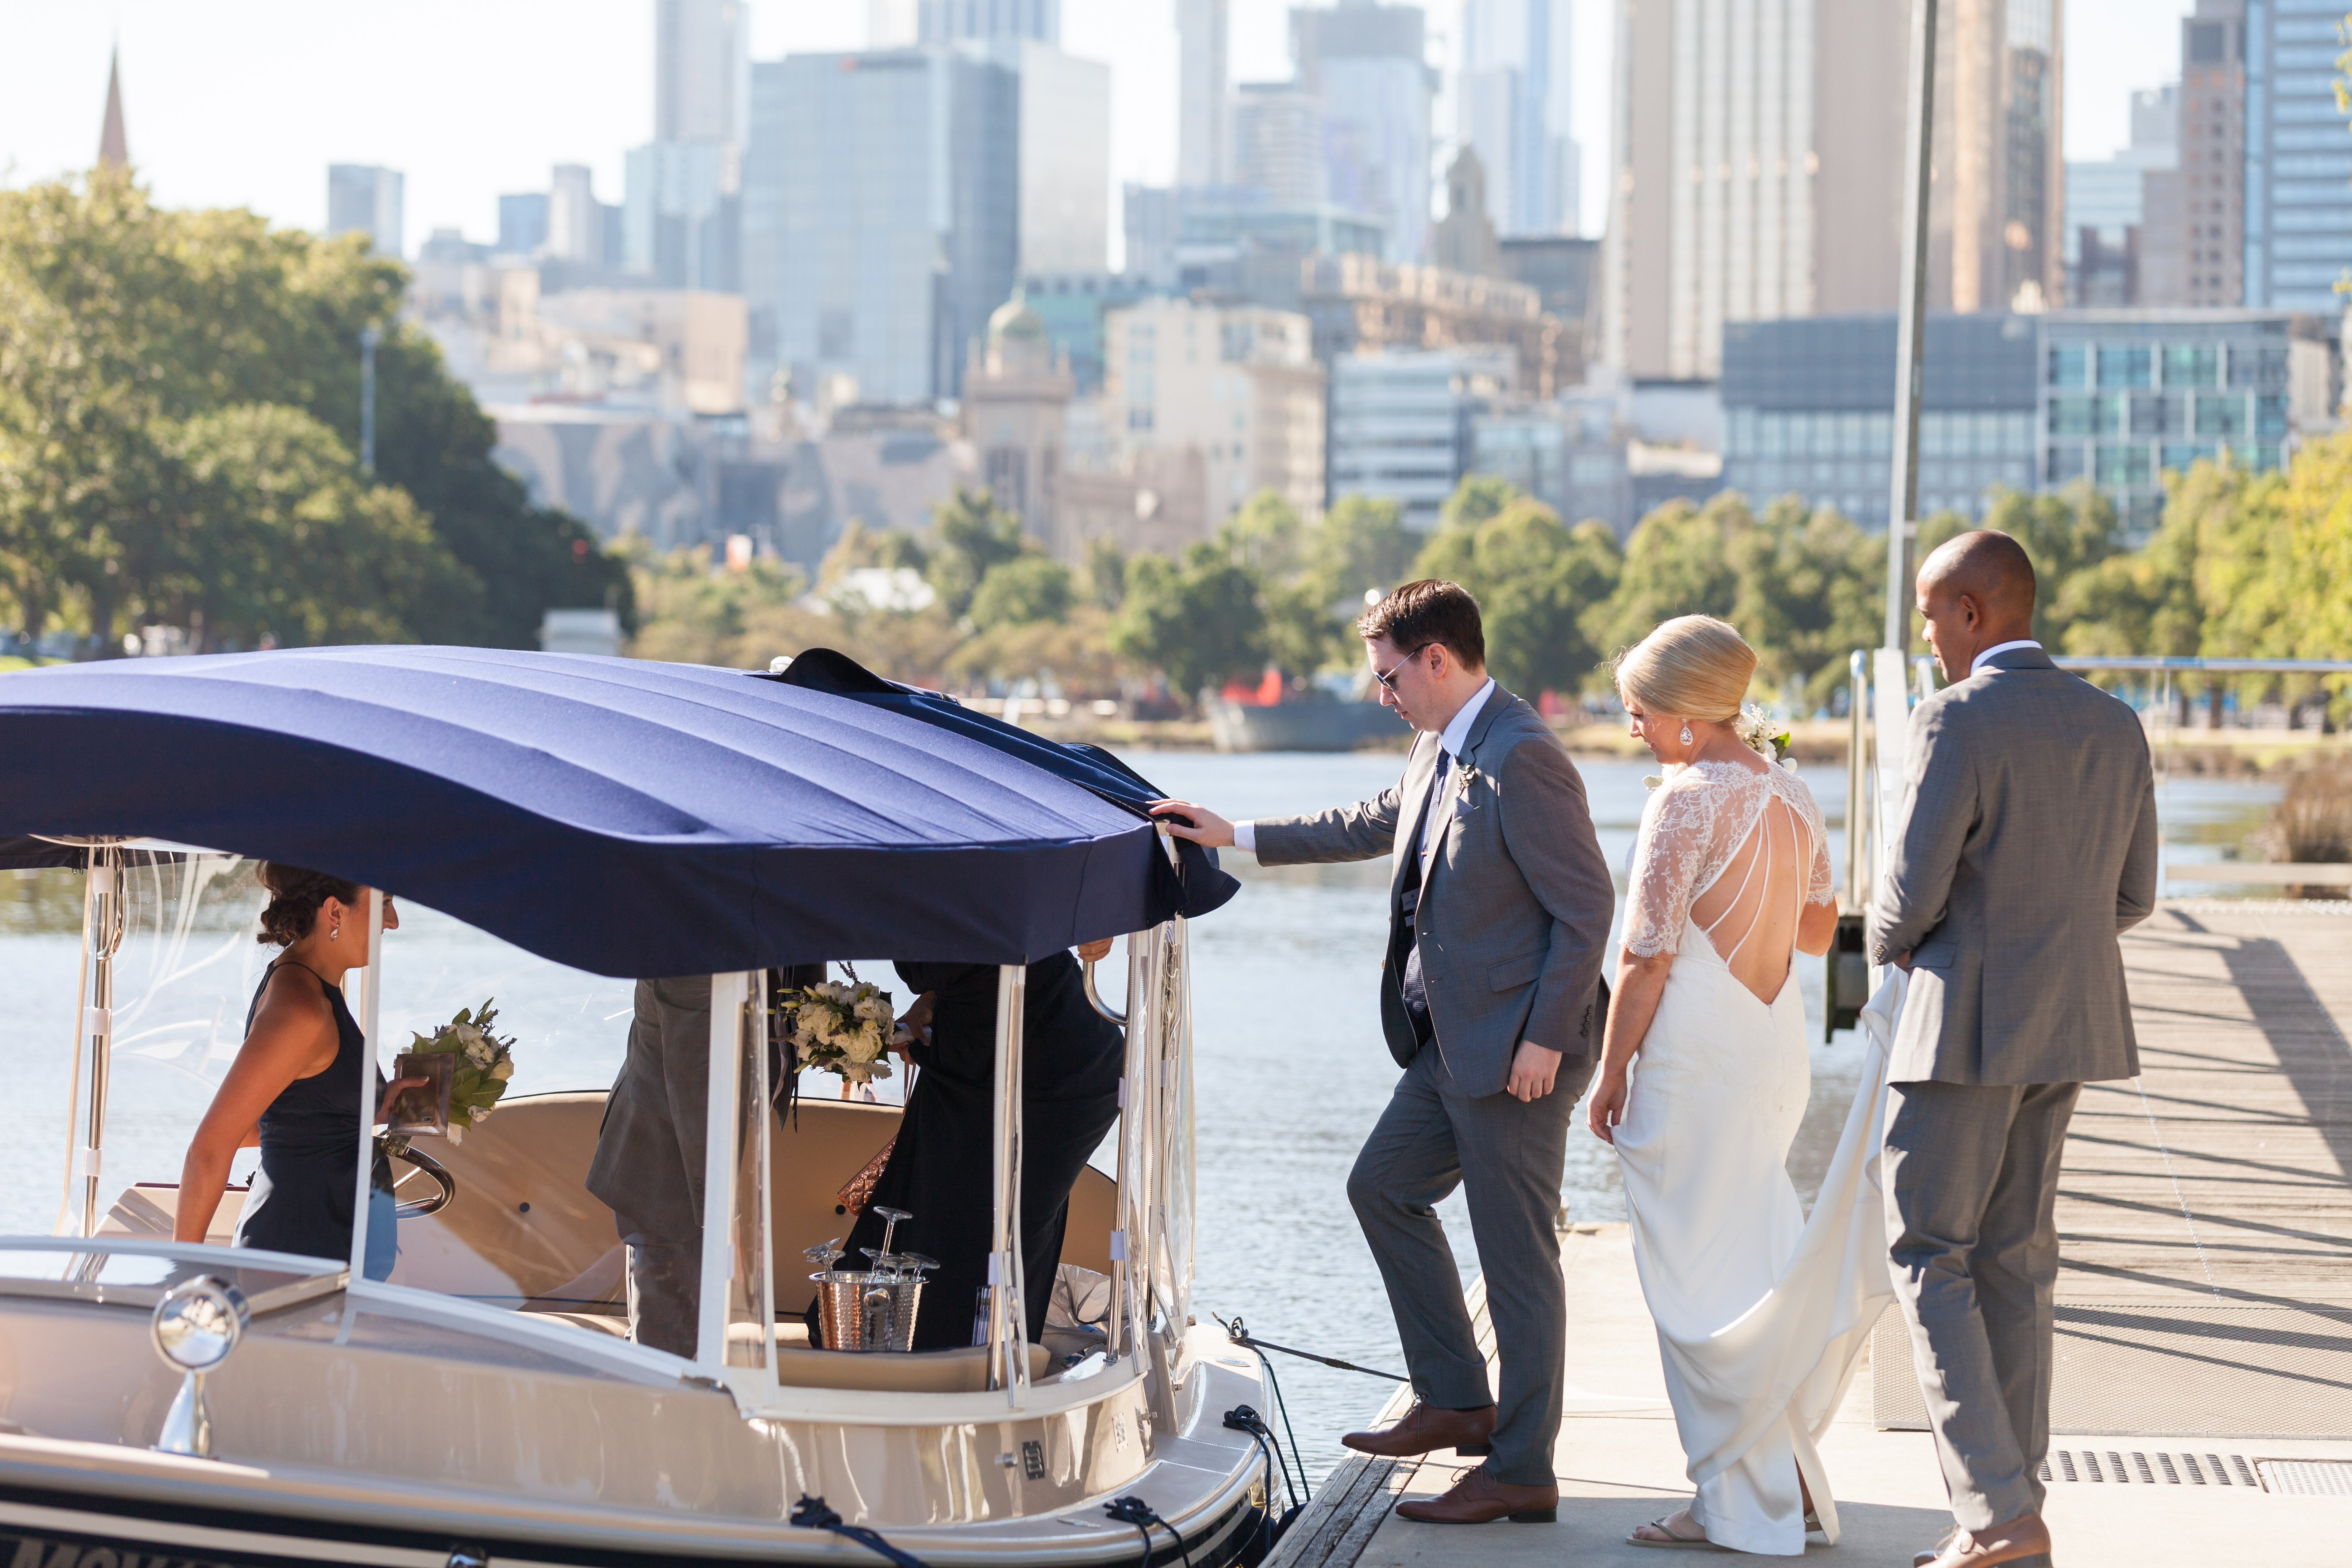 brides, bridal parties- enjoy a wedding transfer on a boat cruising the Yarra River in Melbourne